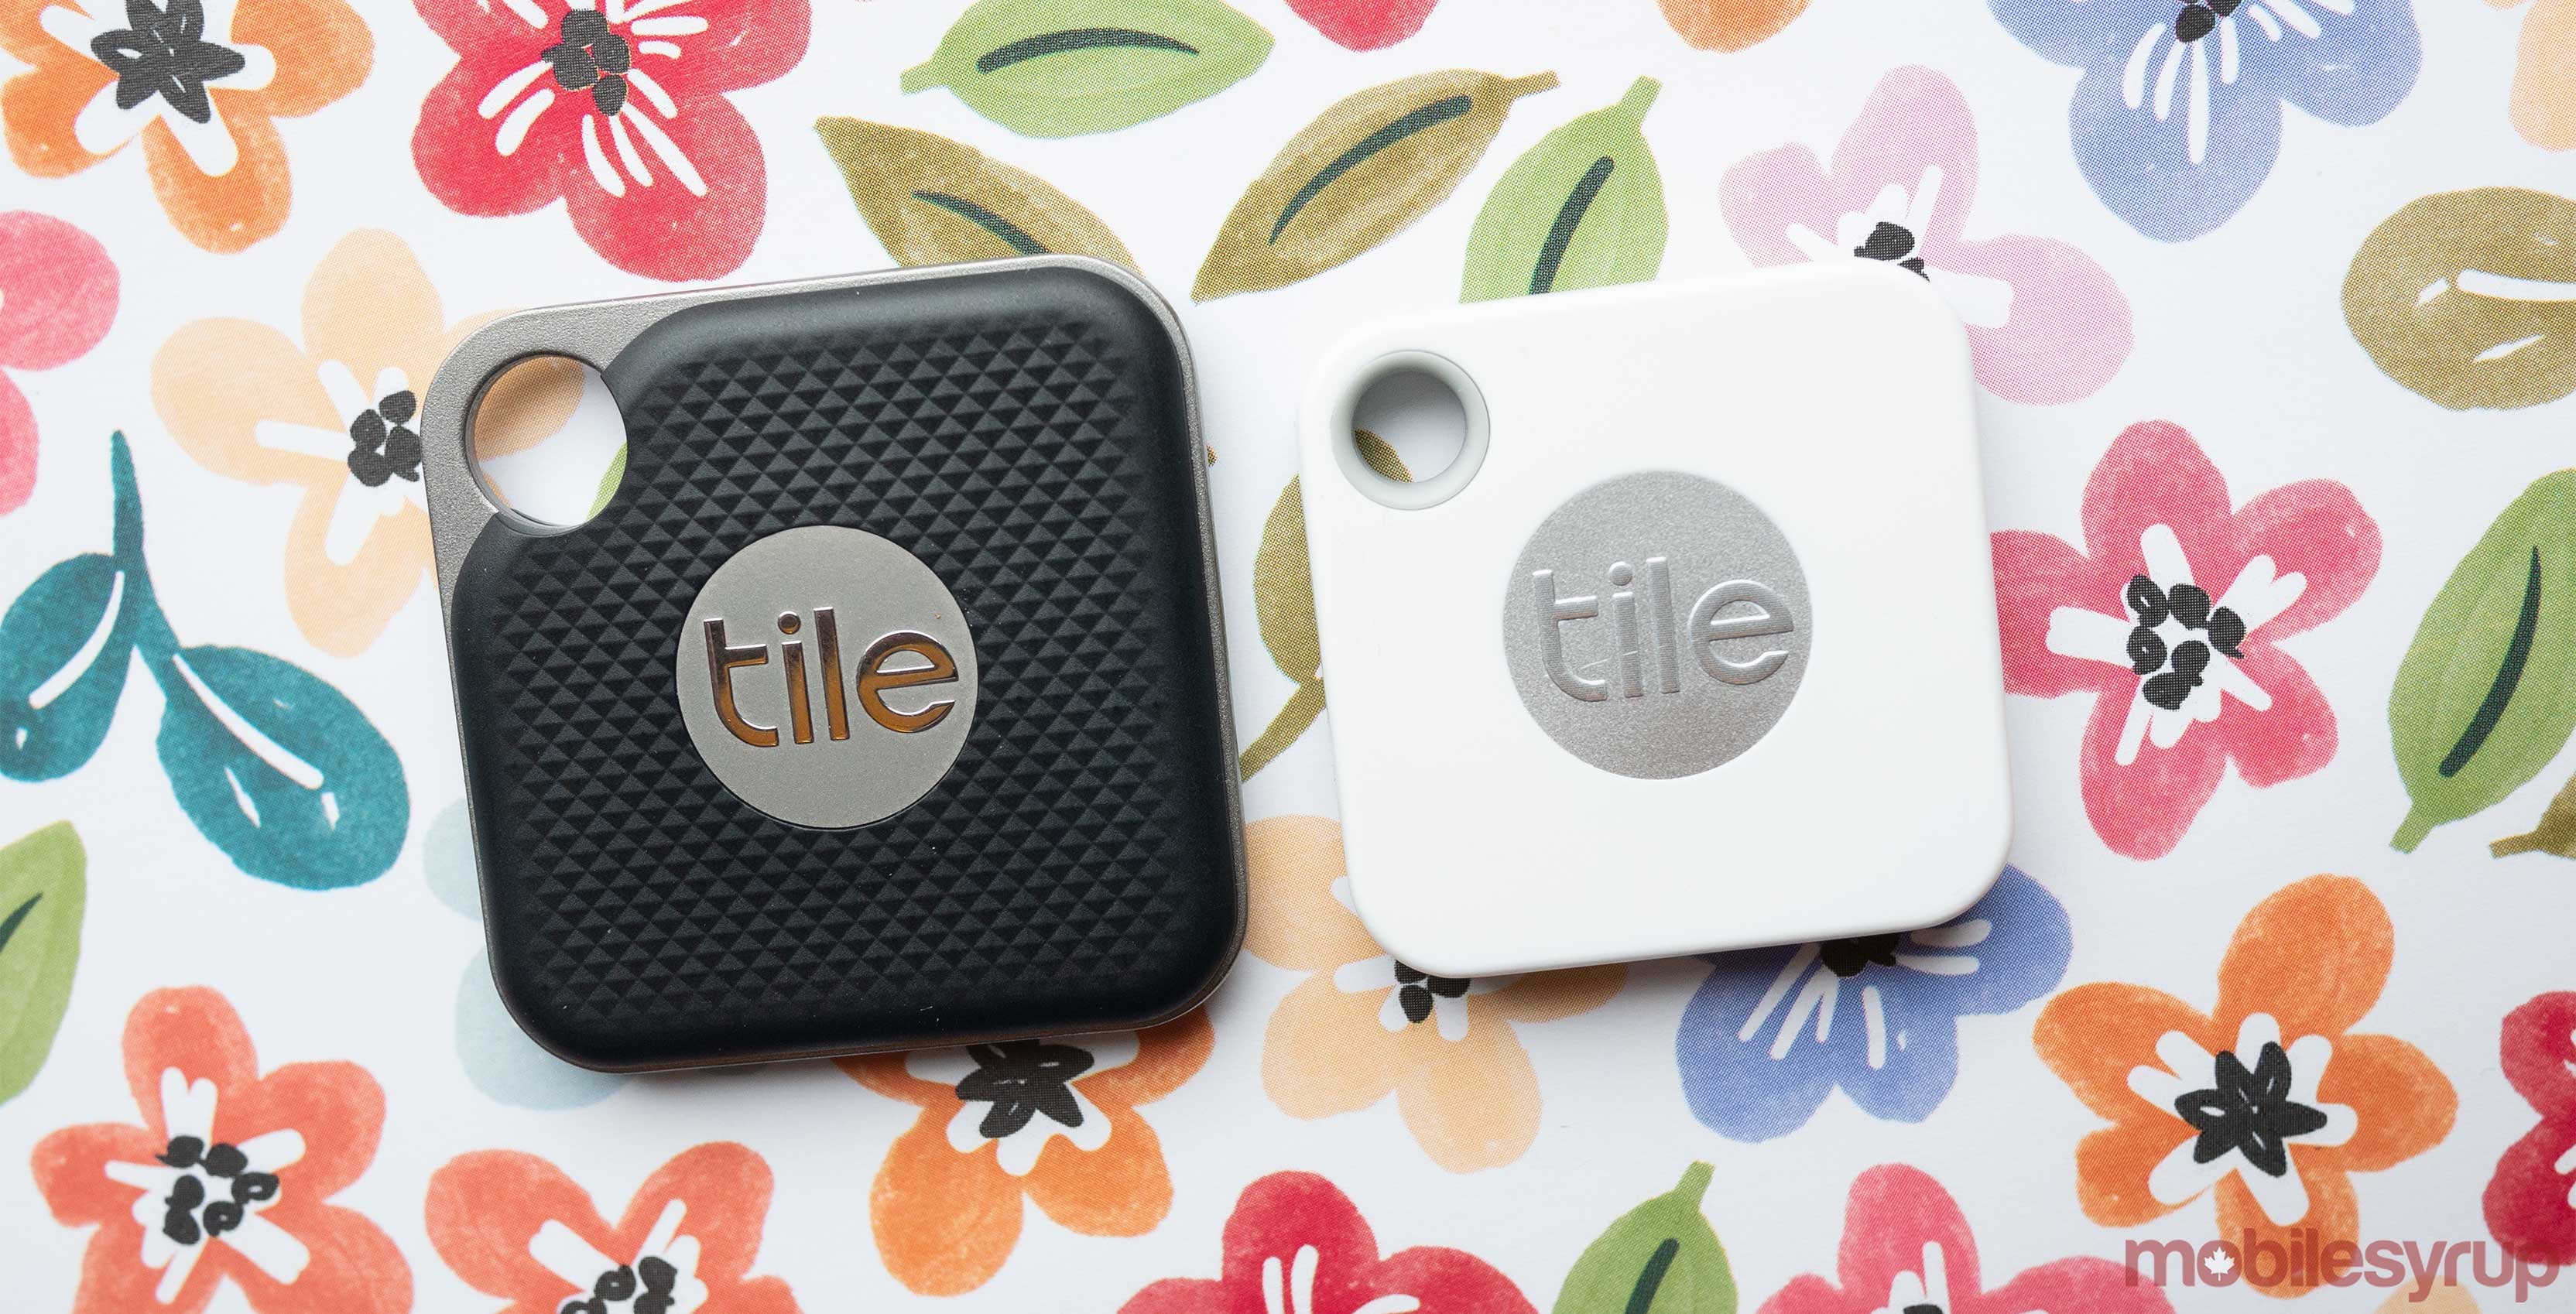 Tile Mate and Tile Pro